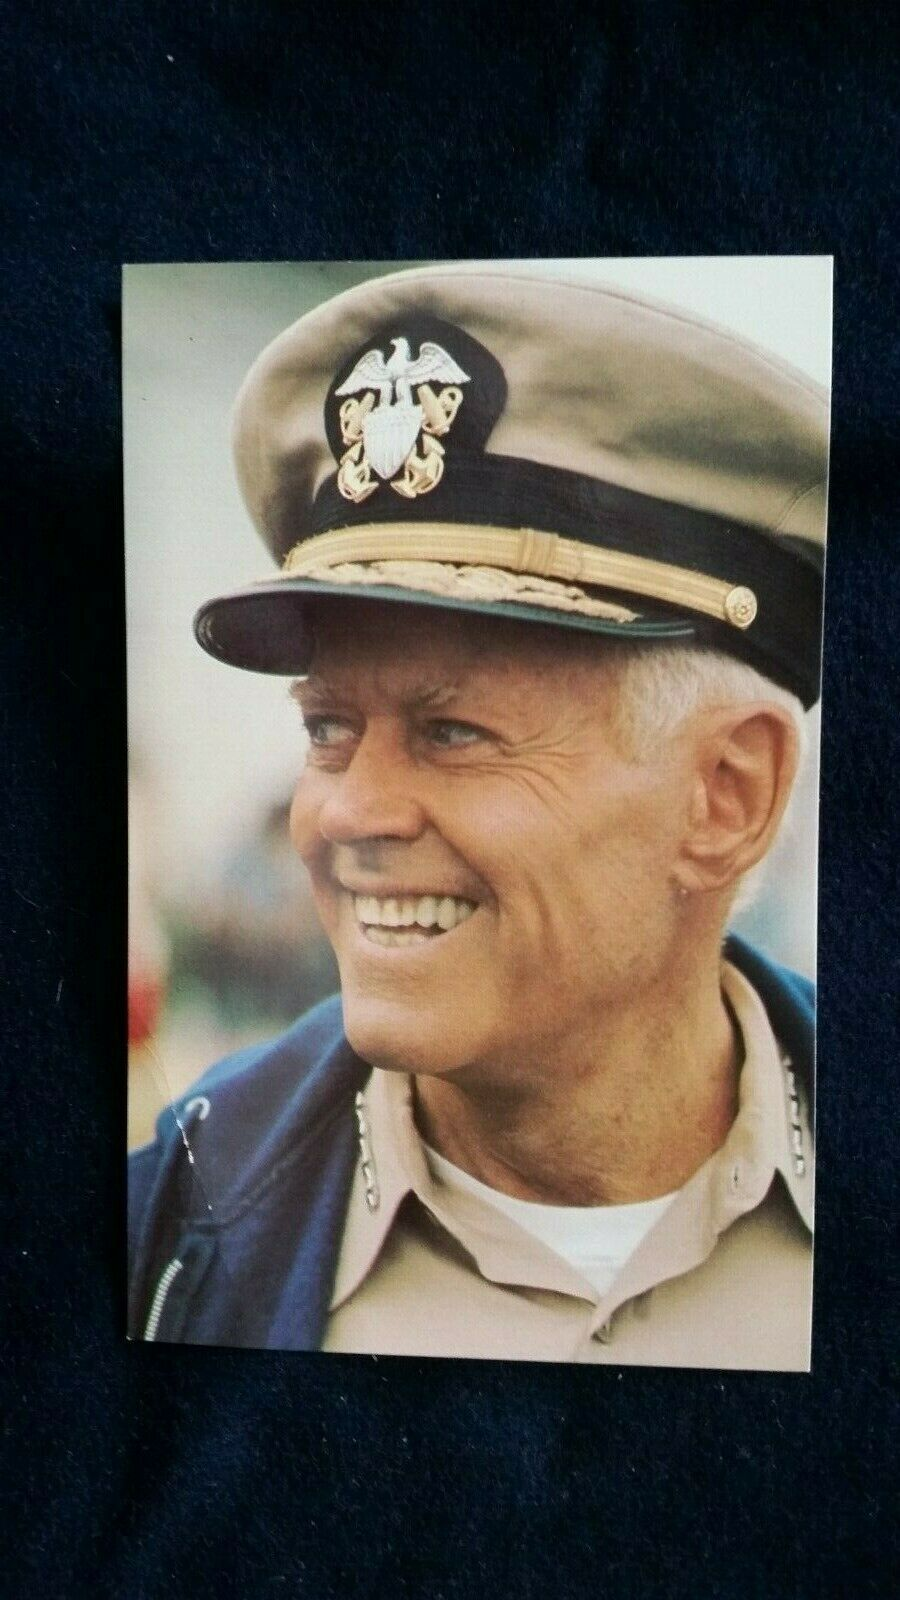 Primary image for Henry Fonda U.S. Navy World War II Military - Movie Actor Postcard 1979!